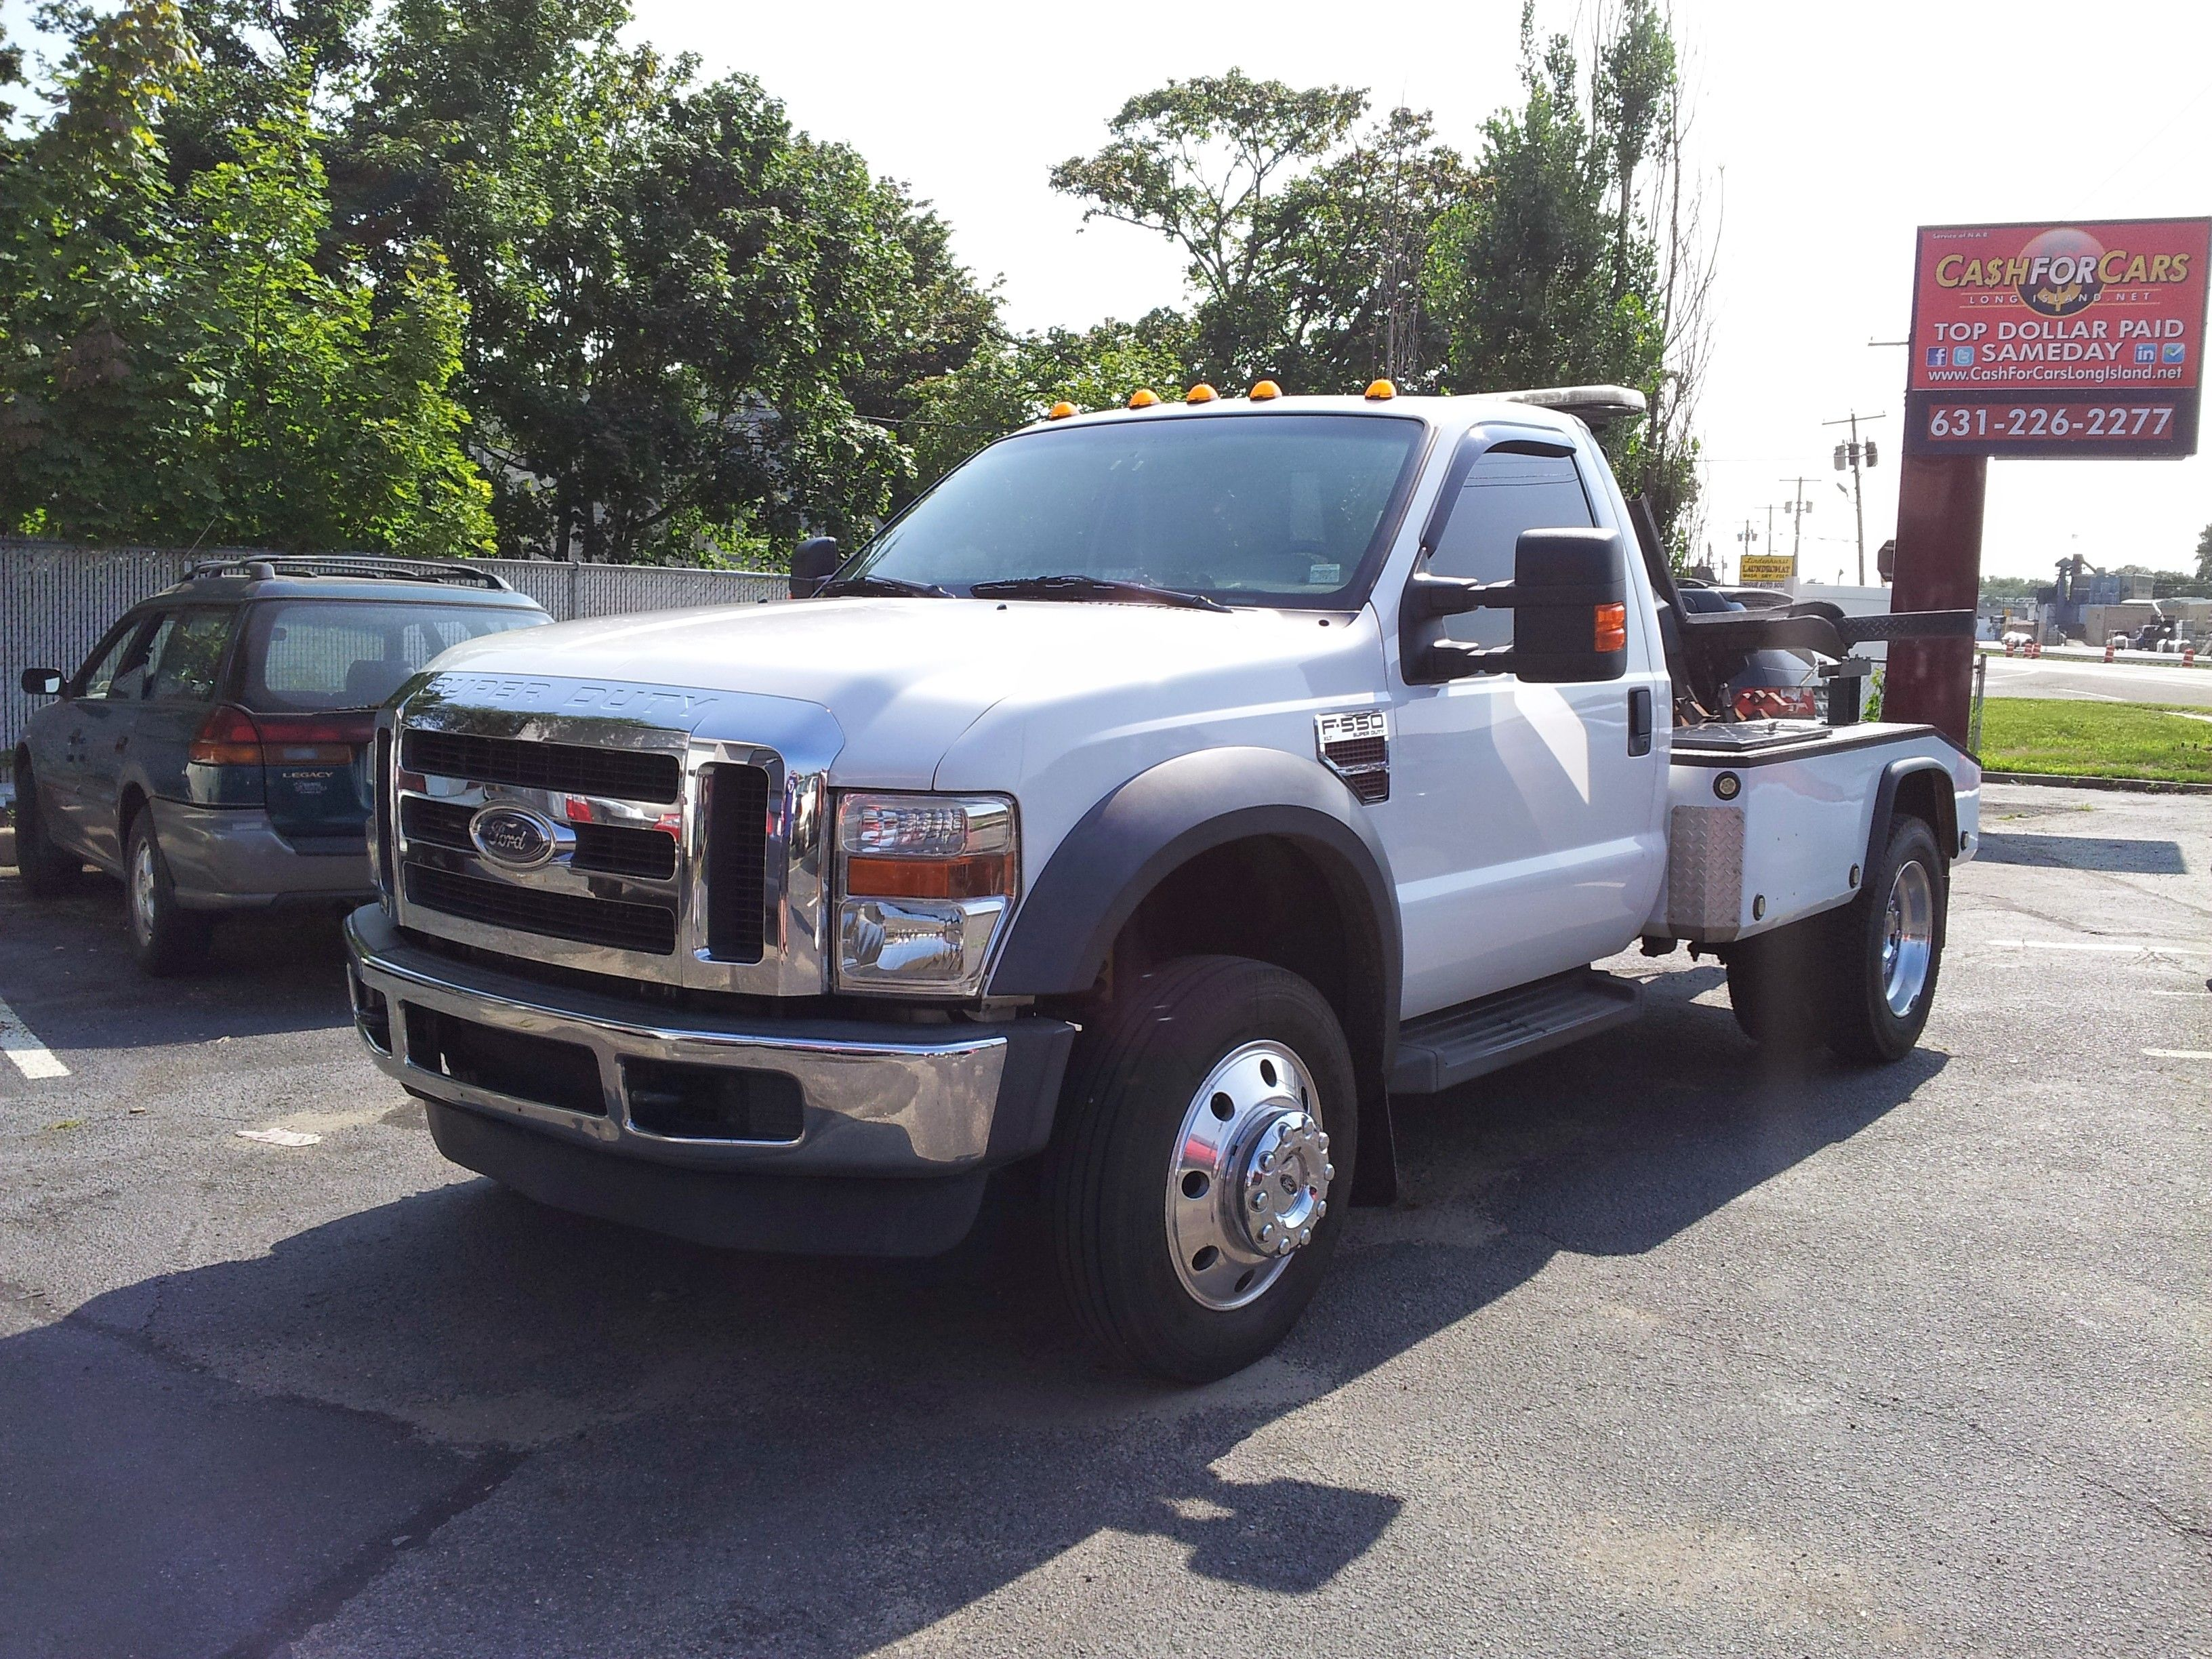 2008 ford f550 wrecker tow truck for sale tow truck long island 631